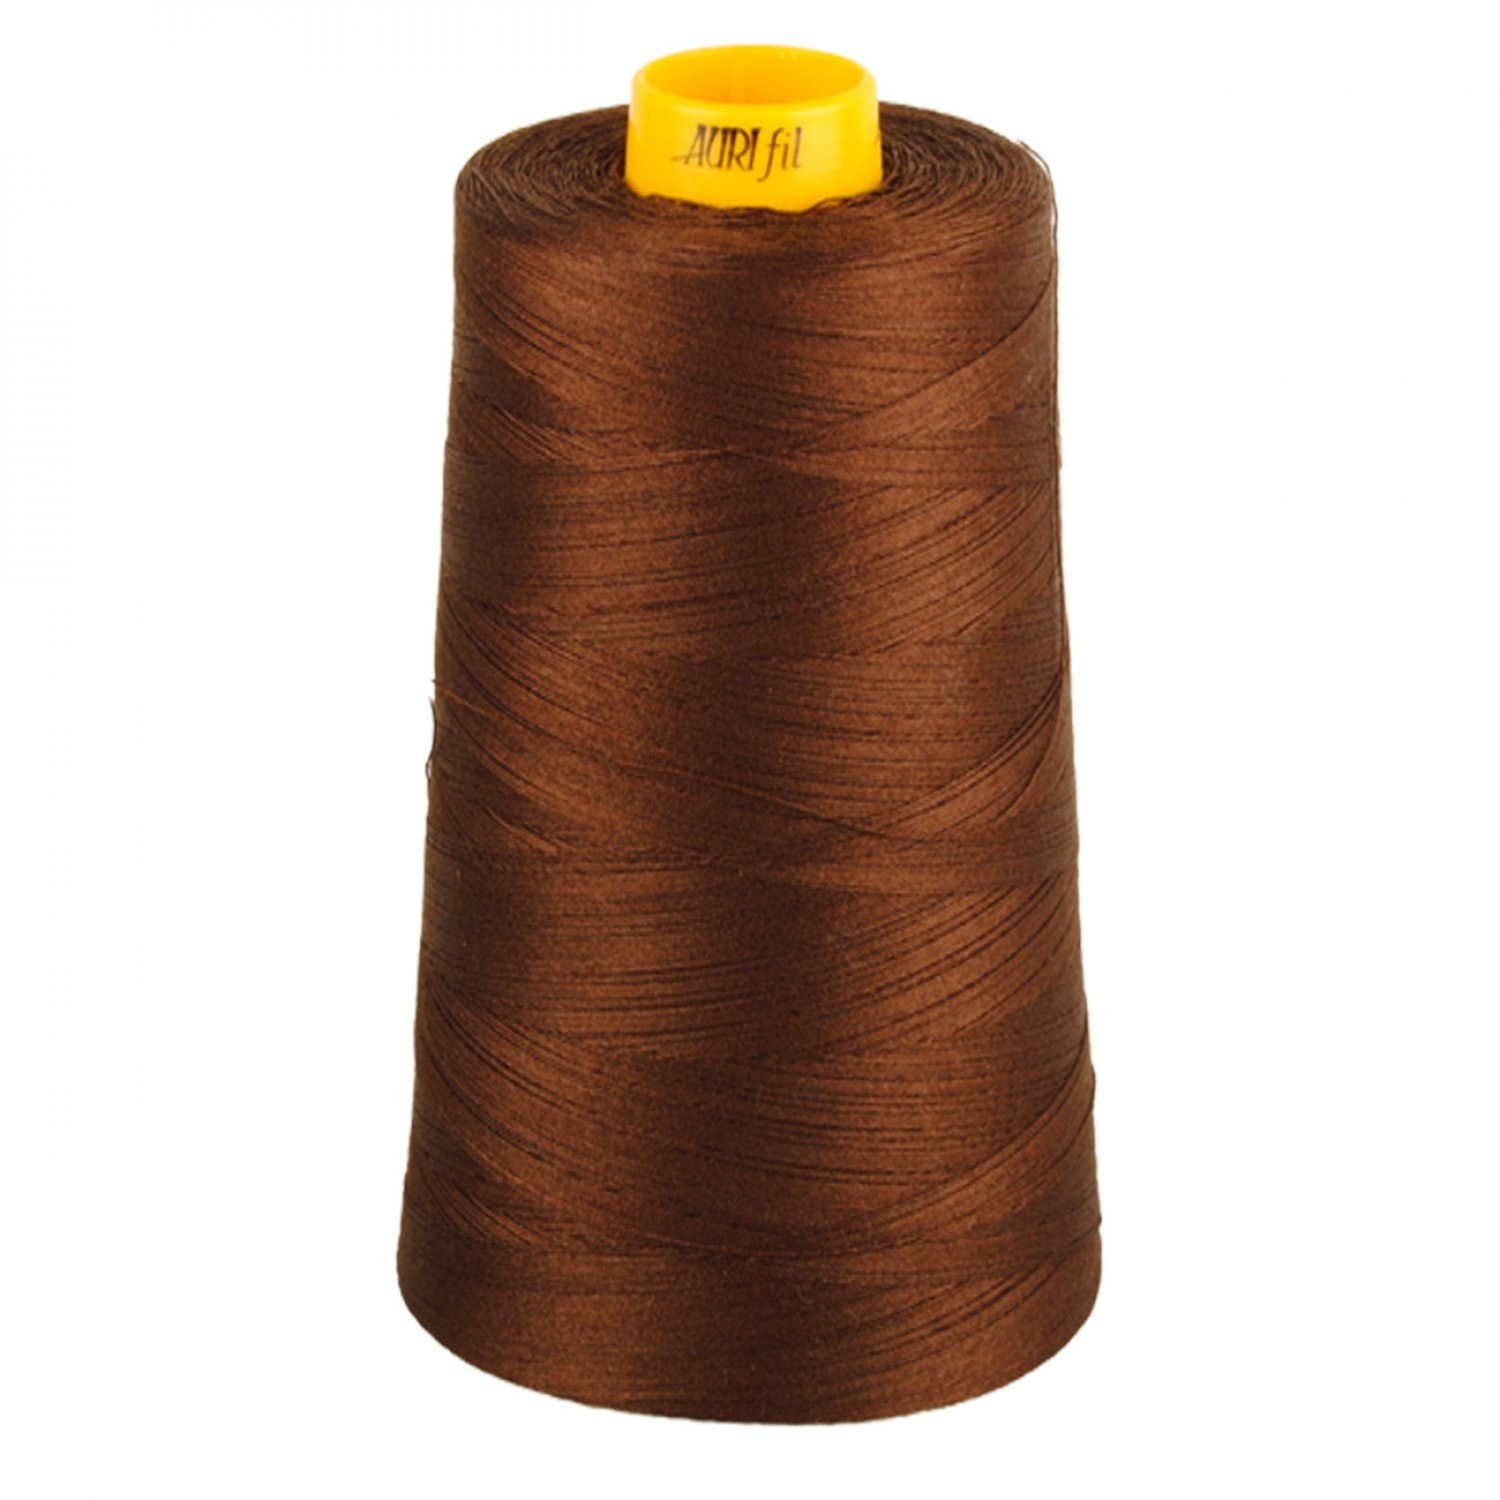 Aurifil Cotton 3-ply Longarm Thread 40wt 3280yds Chocolate